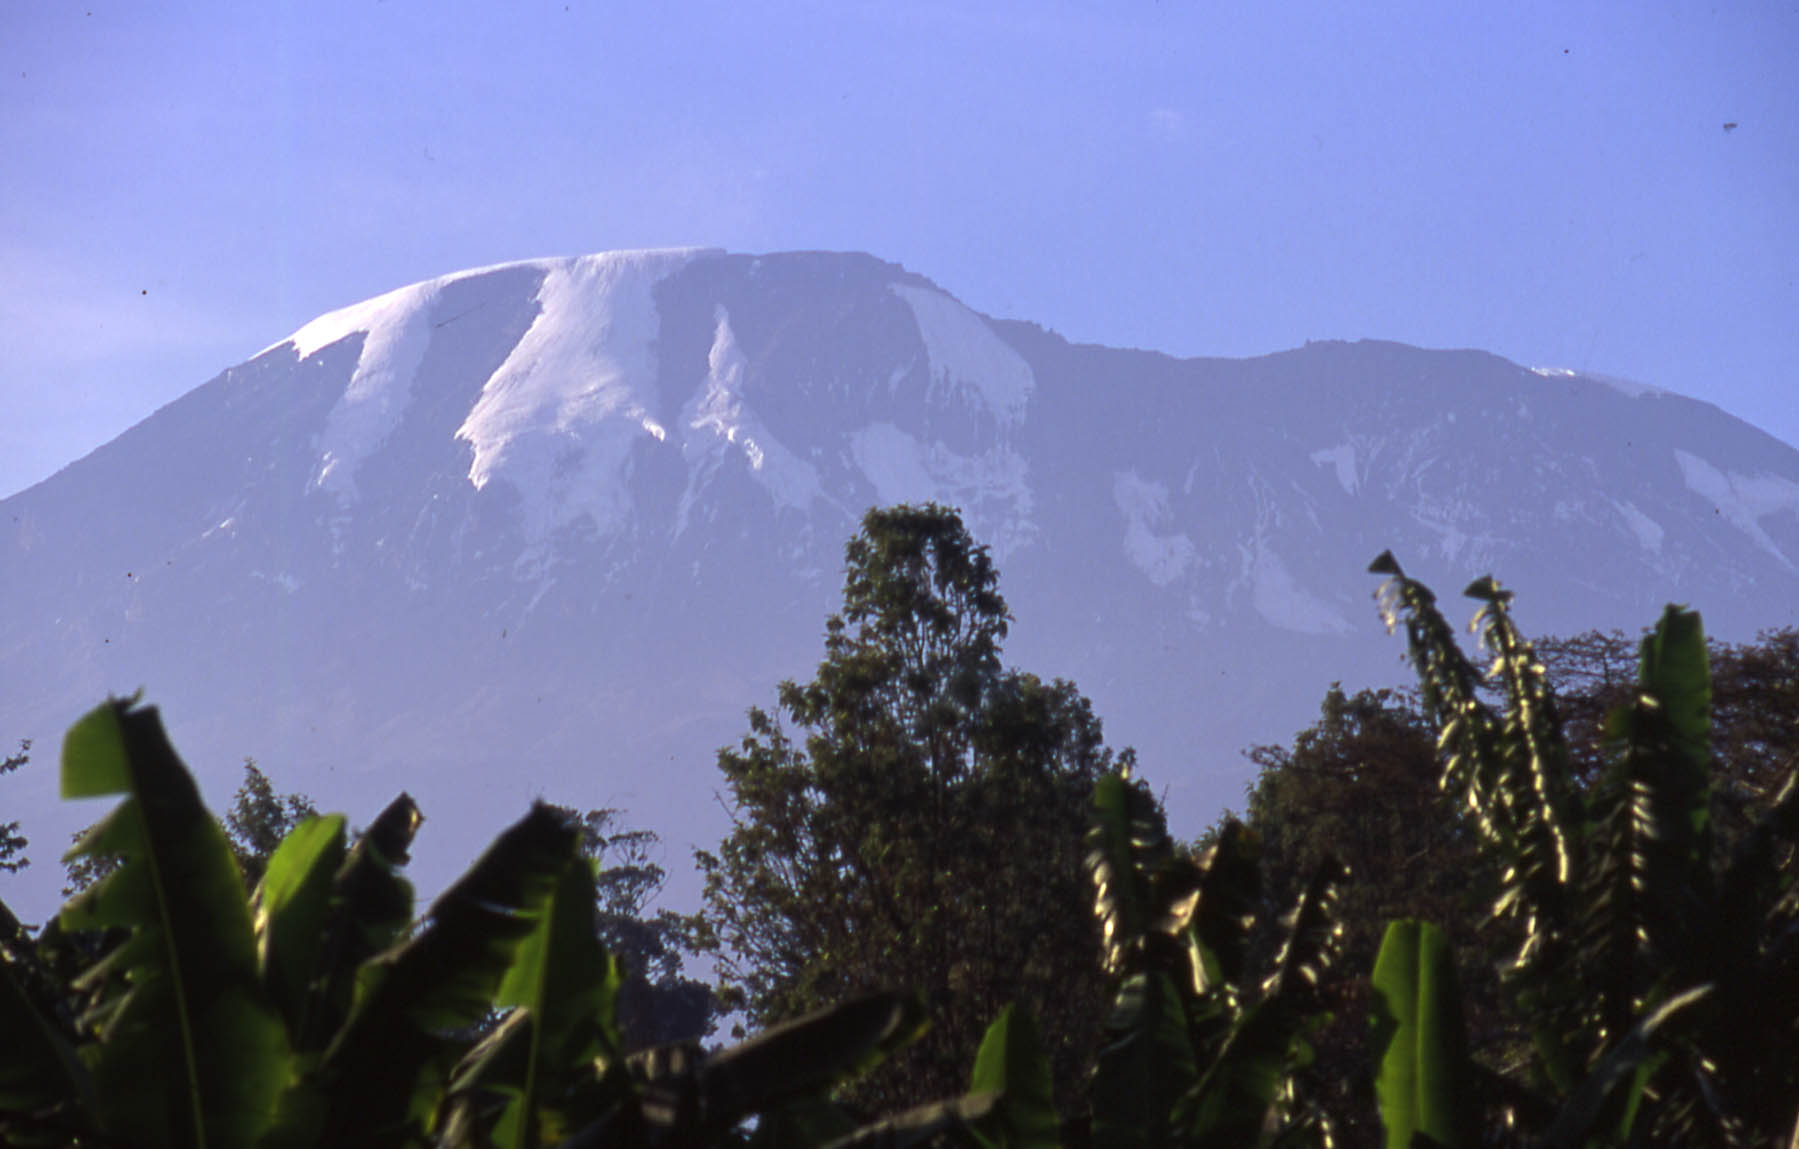 Mount Kilimanjaro : Kili as Earth Mother - her flanks support rain and cloud forest to 9,500ft - © Arabella Cecil